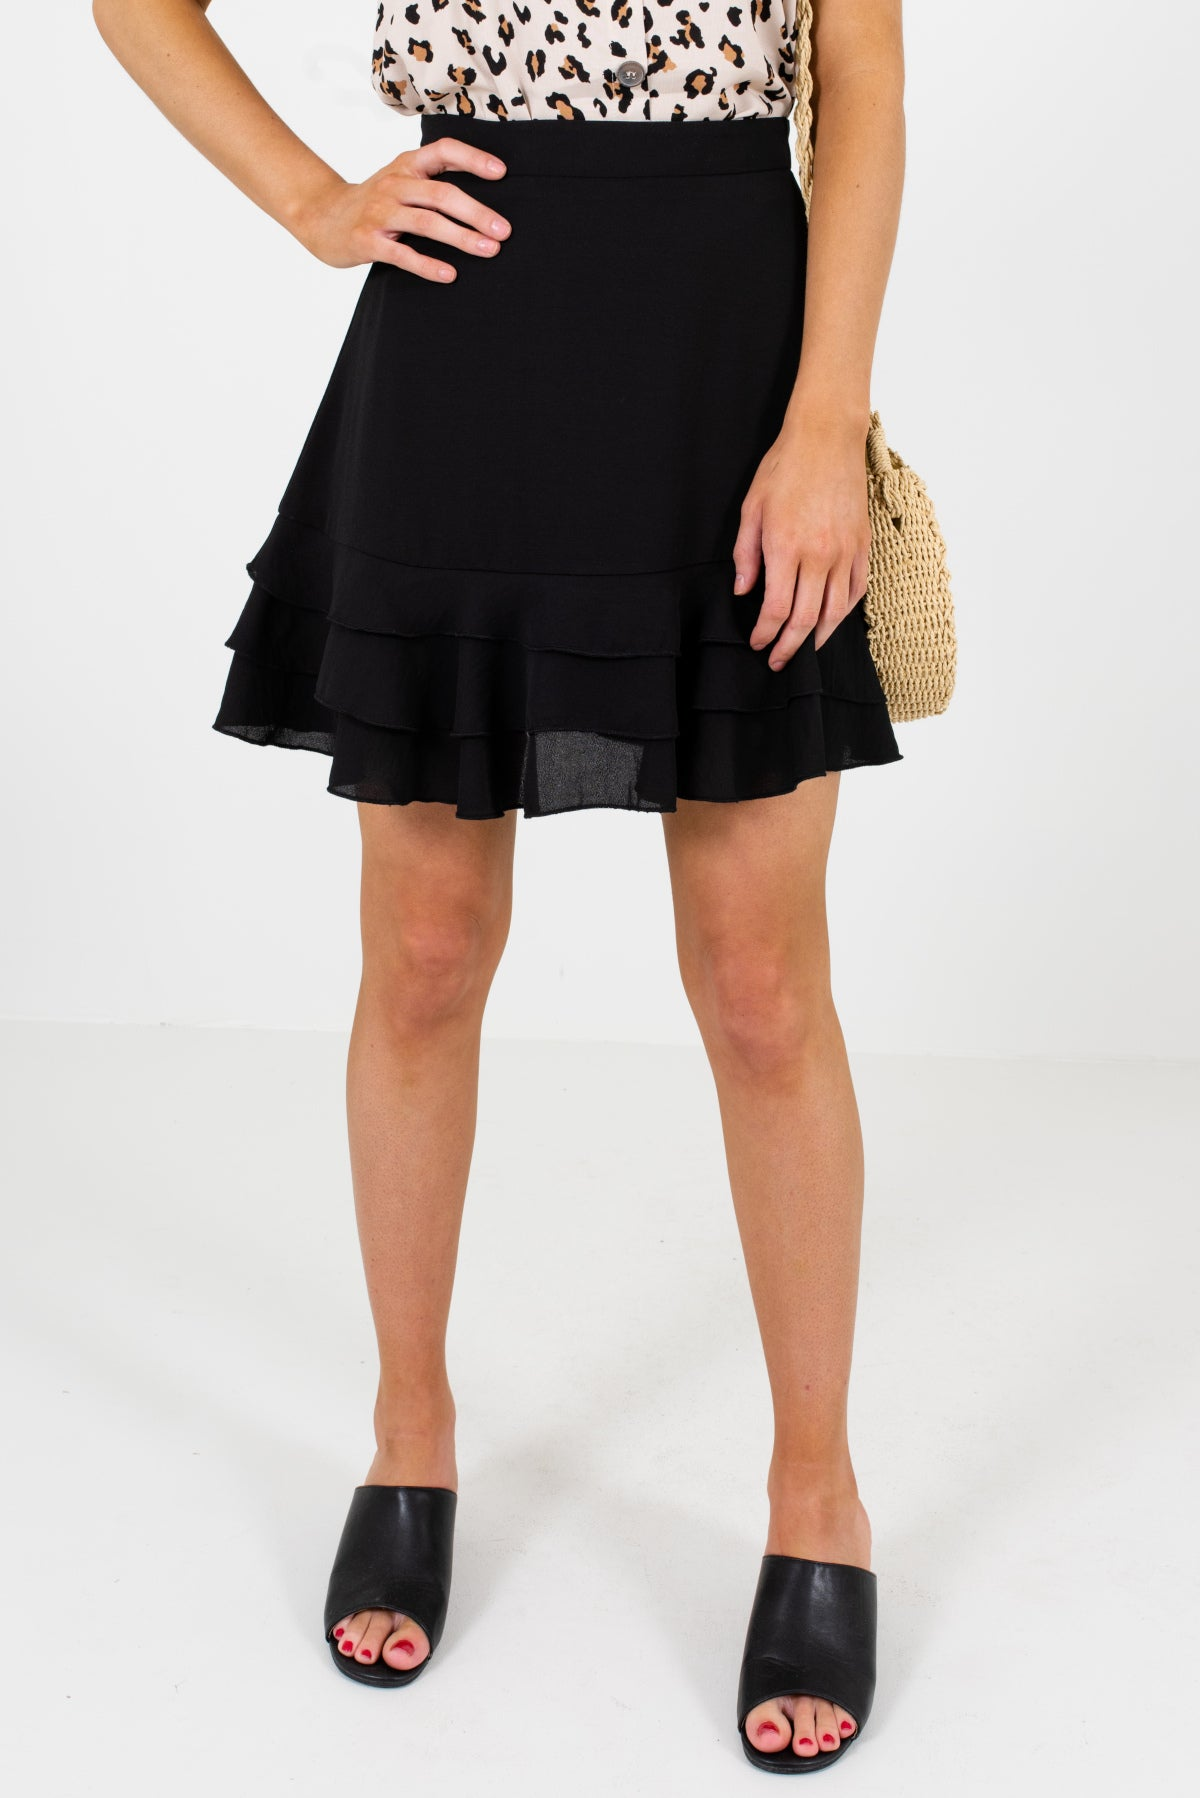 Black Ruffled Hem Mini Length Boutique Skirts for Women